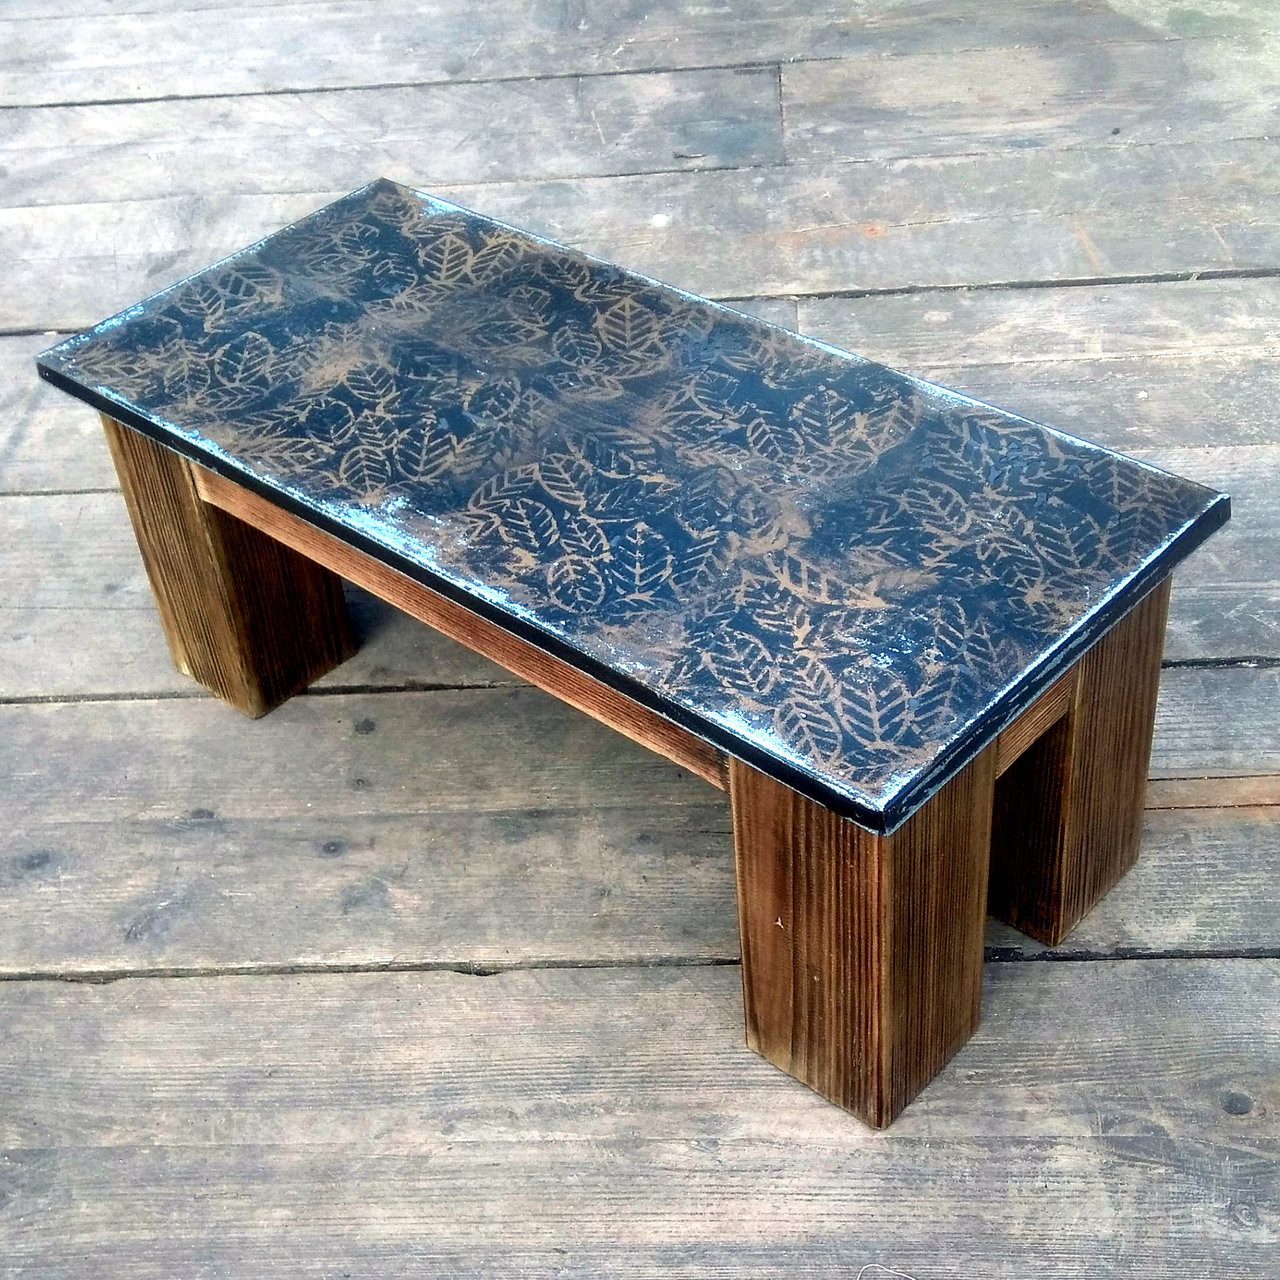 Reclaimed Wood Metal Coffee Table.Metal Side Table With Gold And Black Paint Finish Great Mix Of Reclaimed Wood And Steel Unique Handmade Table